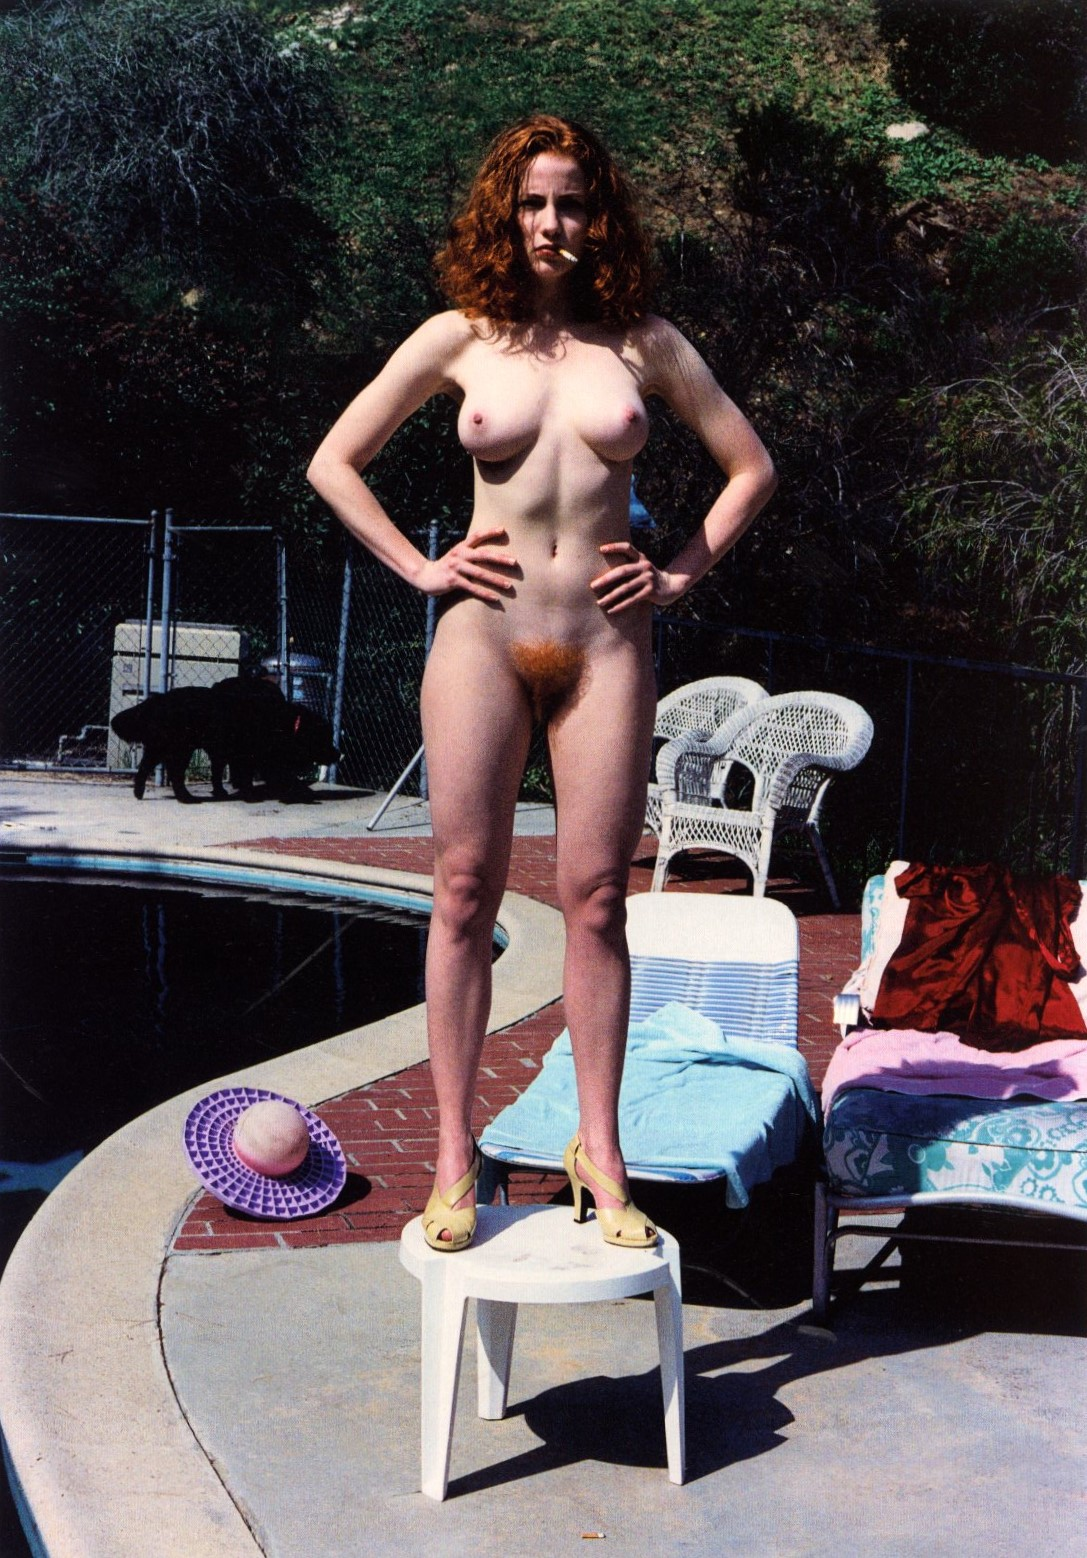 DOMESTIC NUDE IX: THE RED HEAD LOS ANGELE| CALIFORNIA 1992 PHOTOGRAPHY HELMUT NEWTON